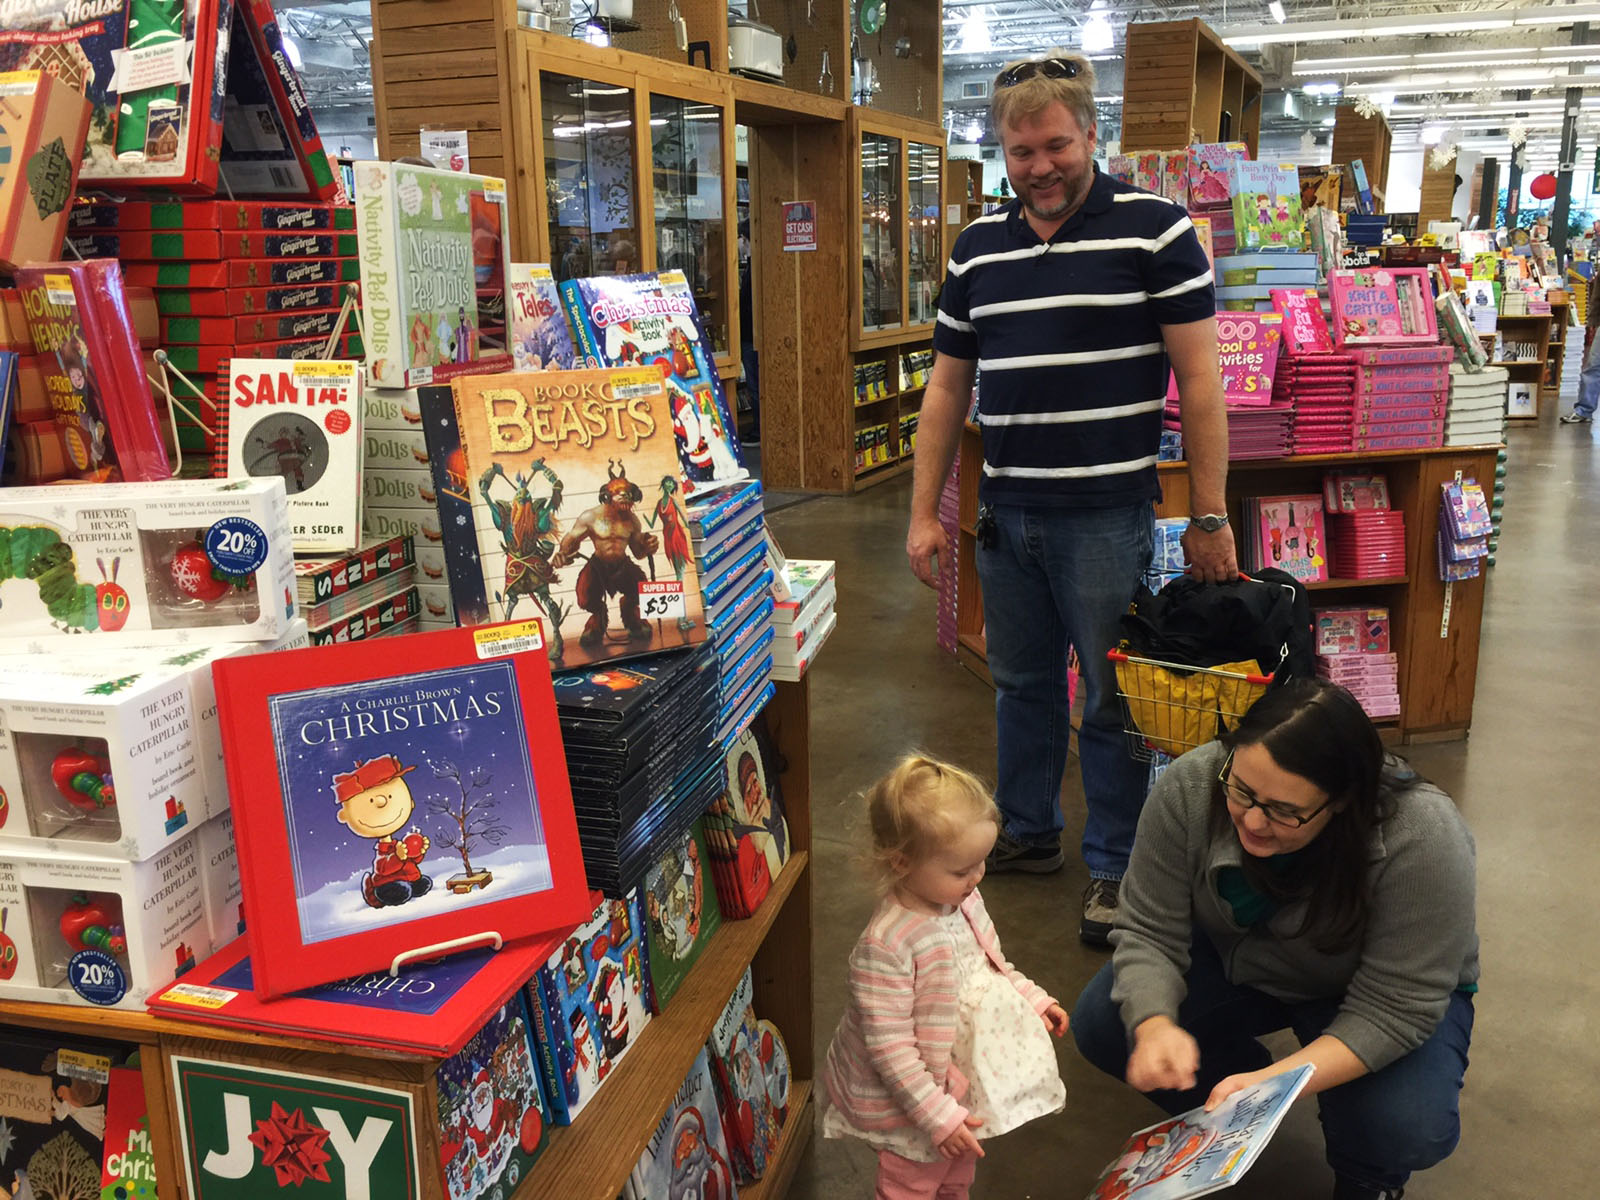 Lee Crump, his wife Glynn and daughter Eleanor on Black Friday on Nov. 27. 2015 at Half Price Books in Dallas. Photo/Courtney Collins